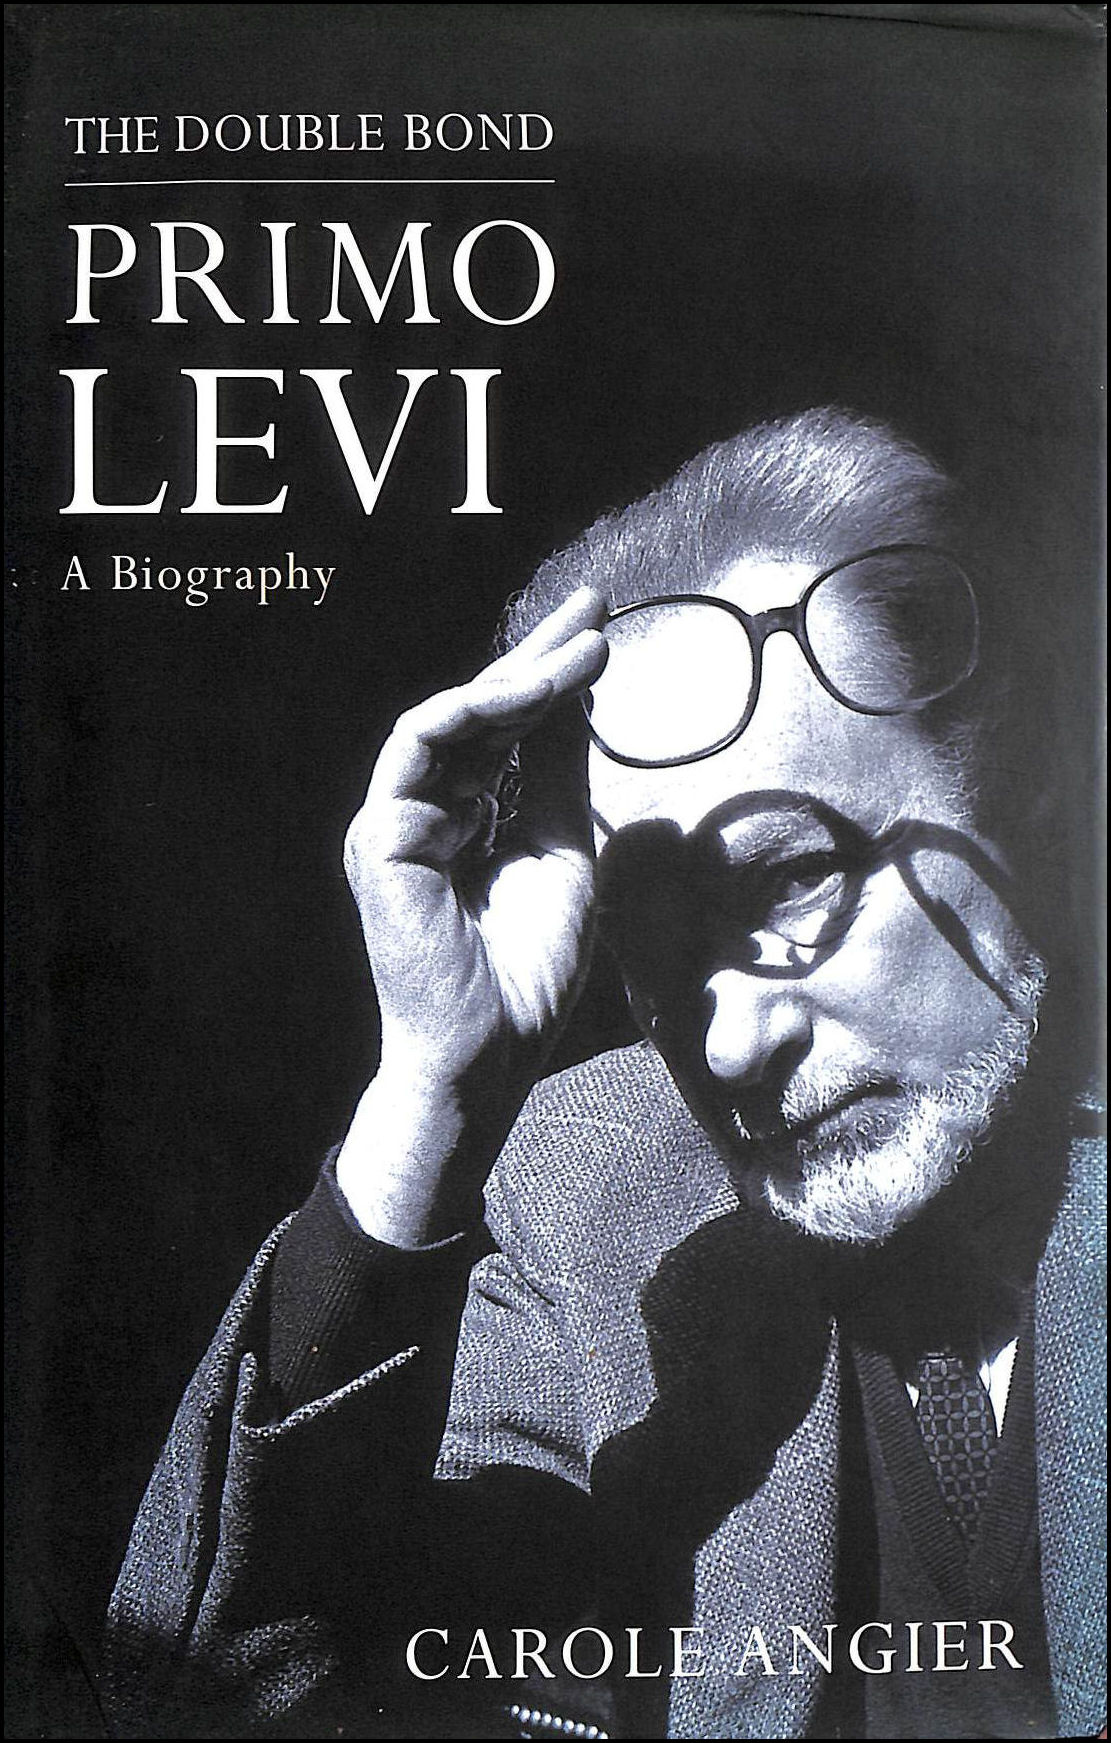 Image for The Double Bond: Primo Levi, a Biography